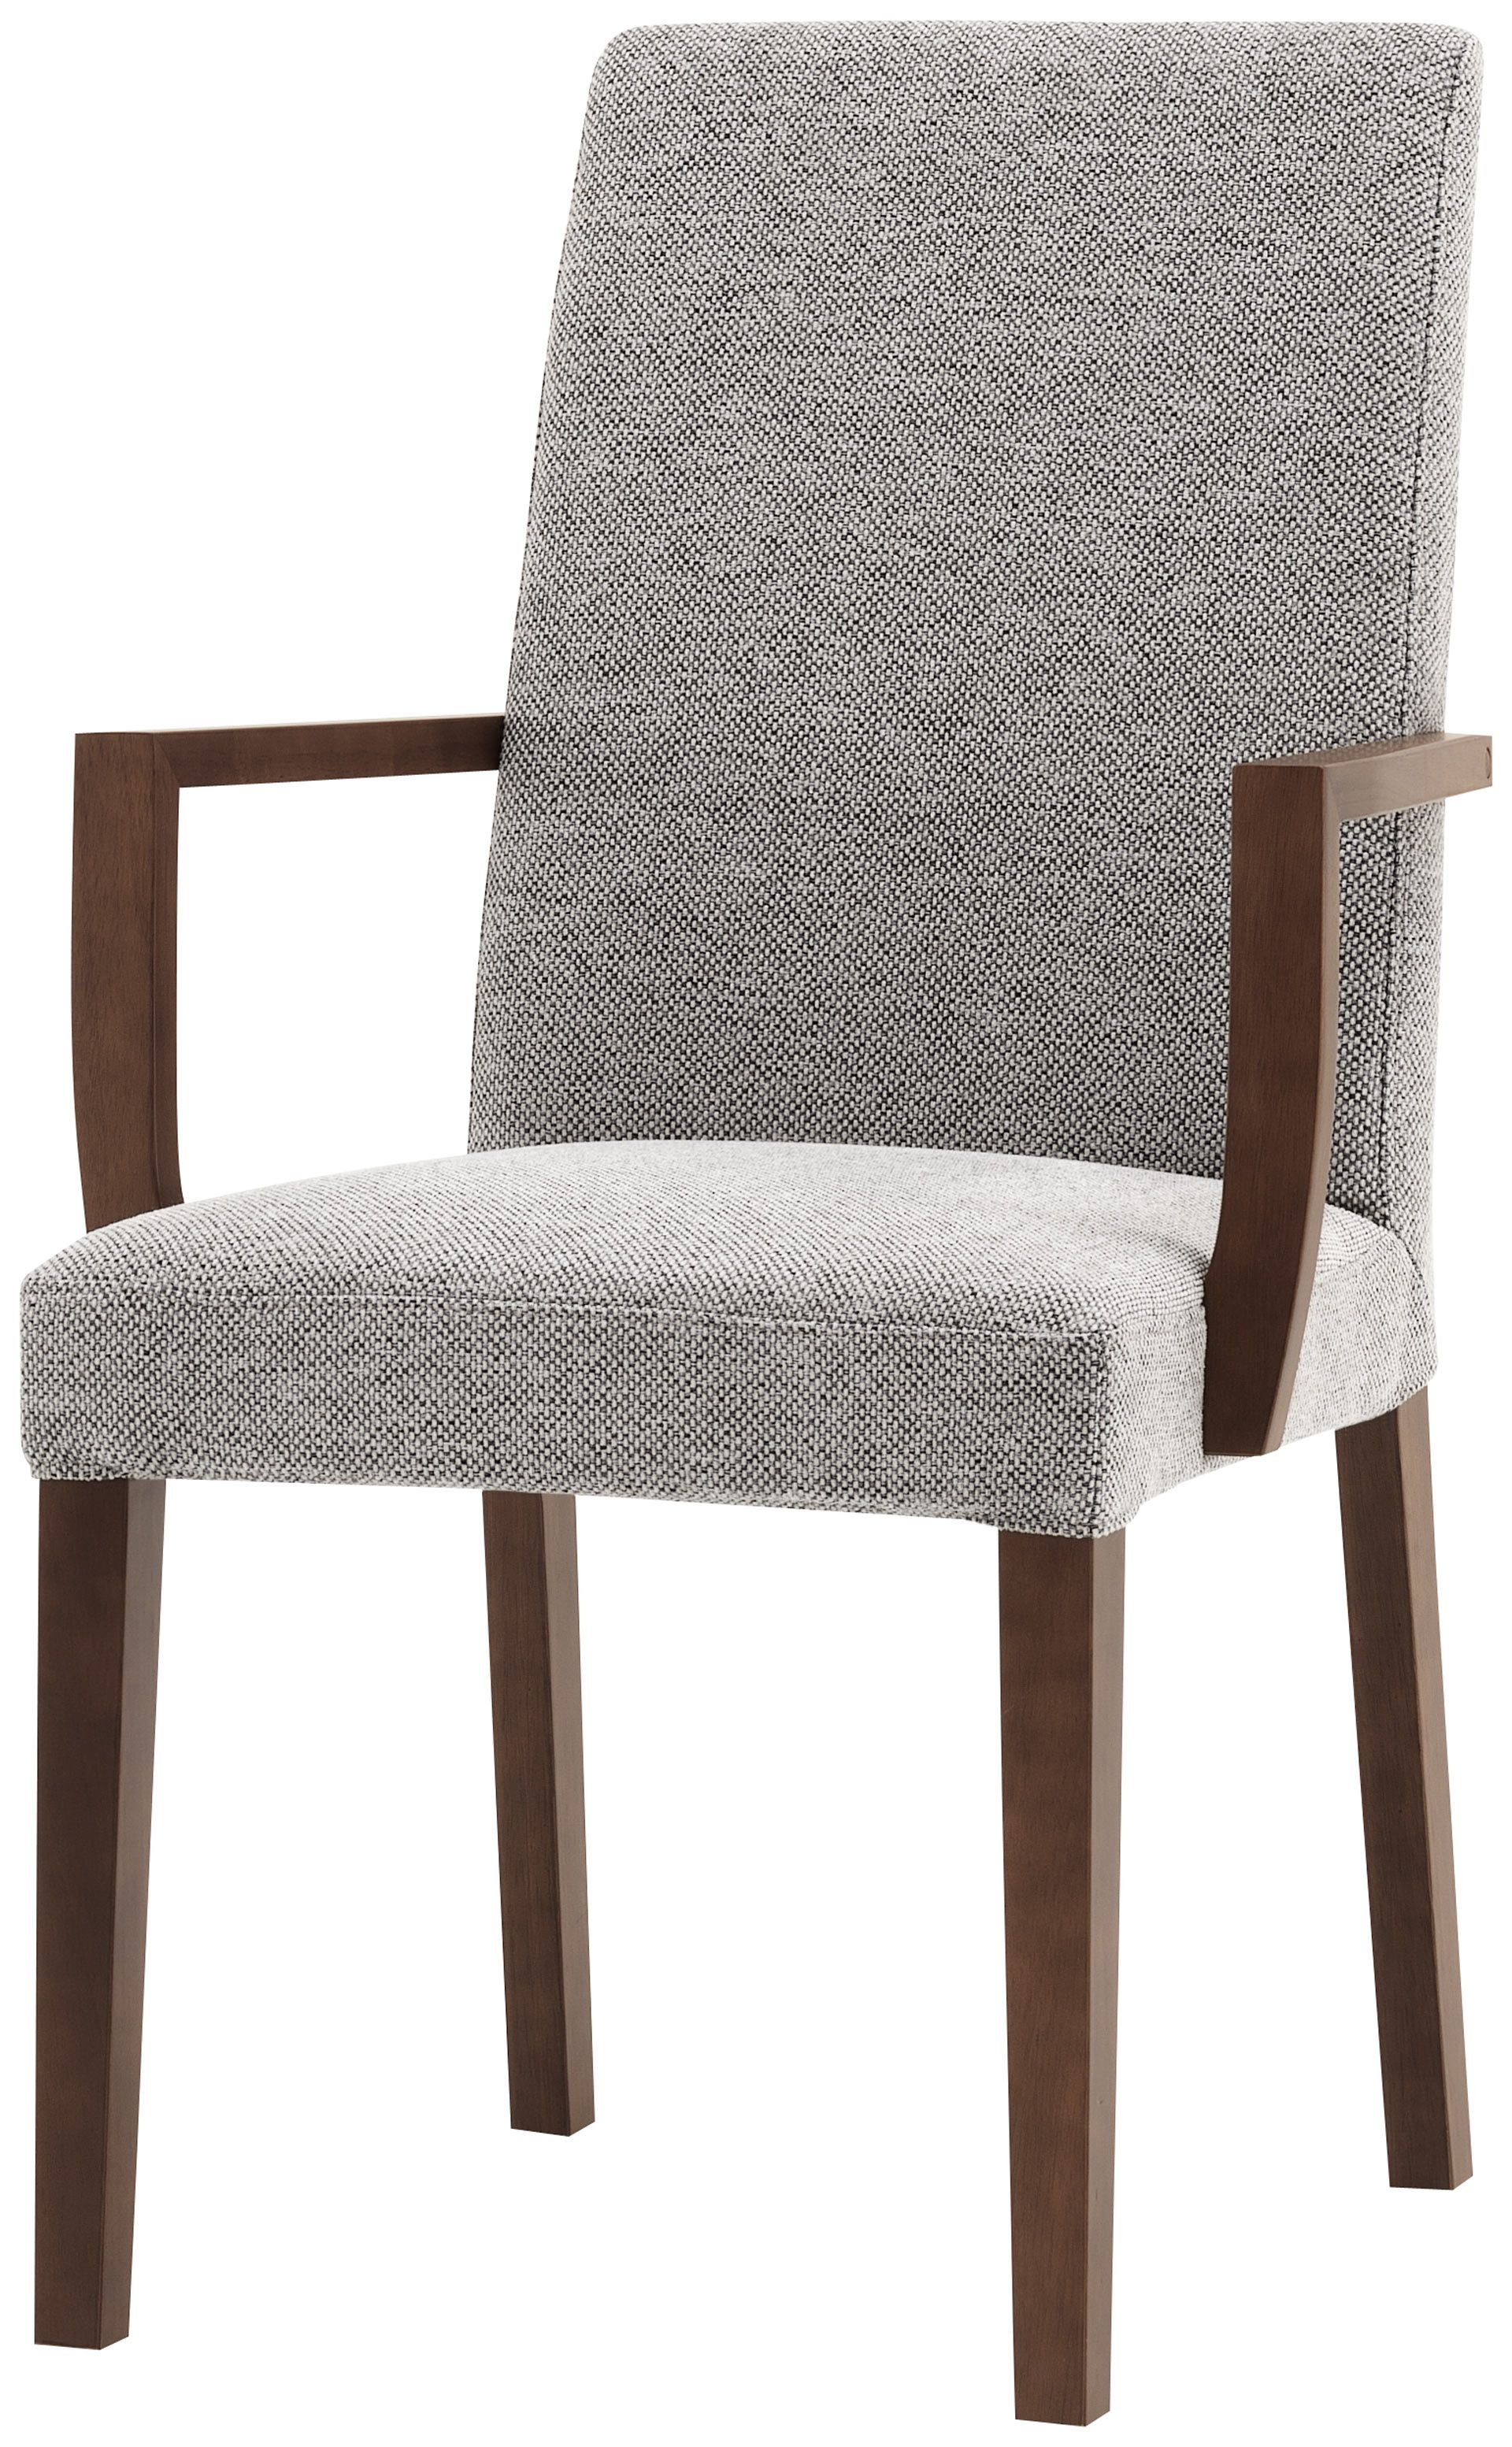 Modern dining chairs designer dining chairs boconcept furniture sydney australia